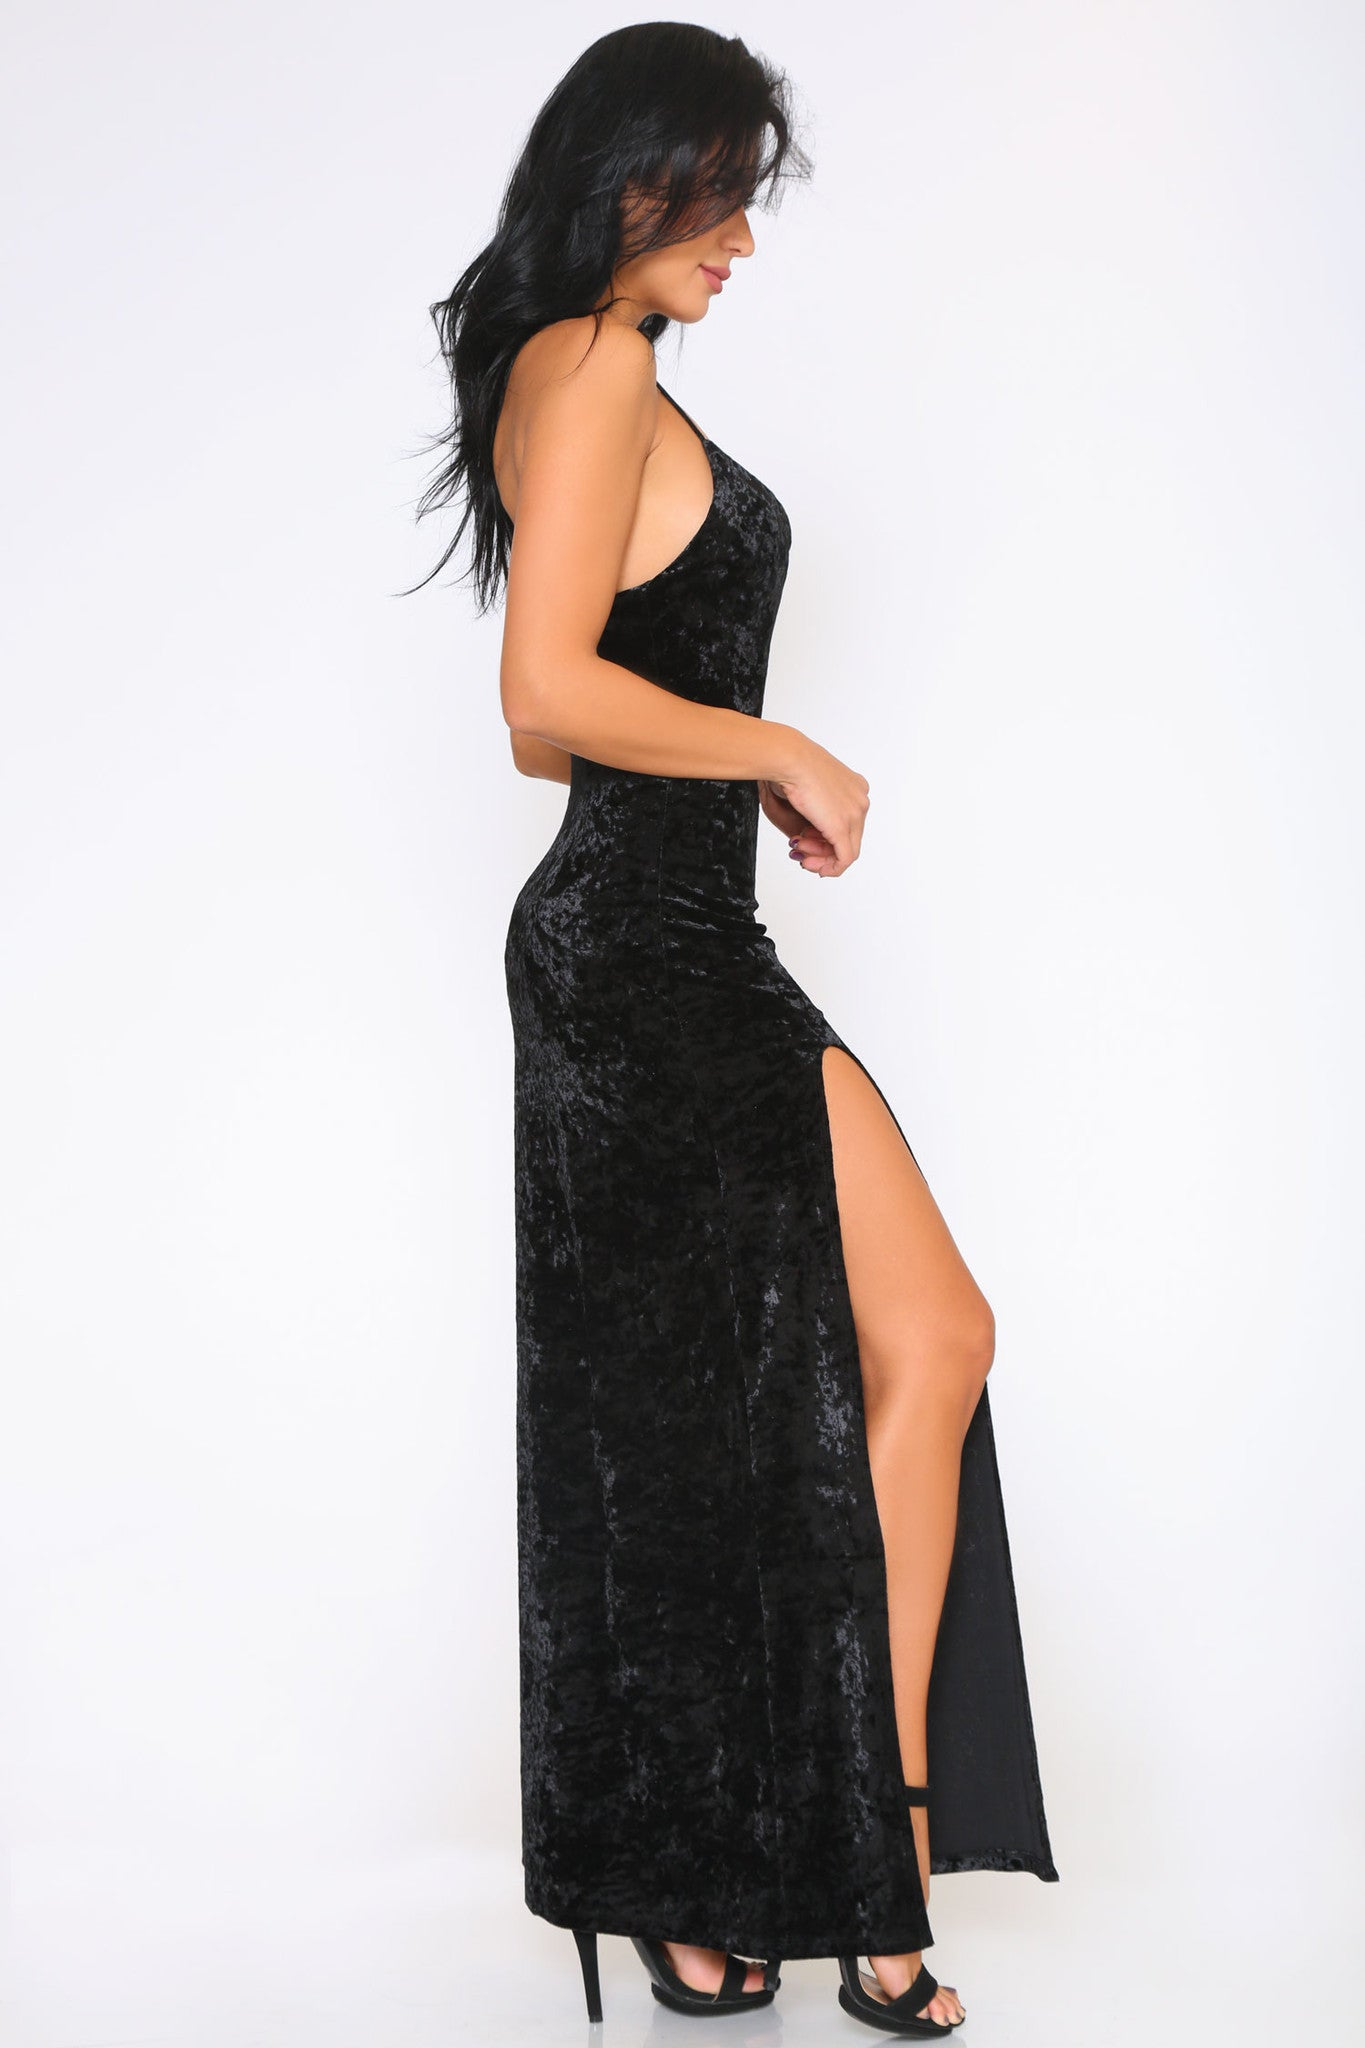 KARISSA DRESS - Glam Envy - 2